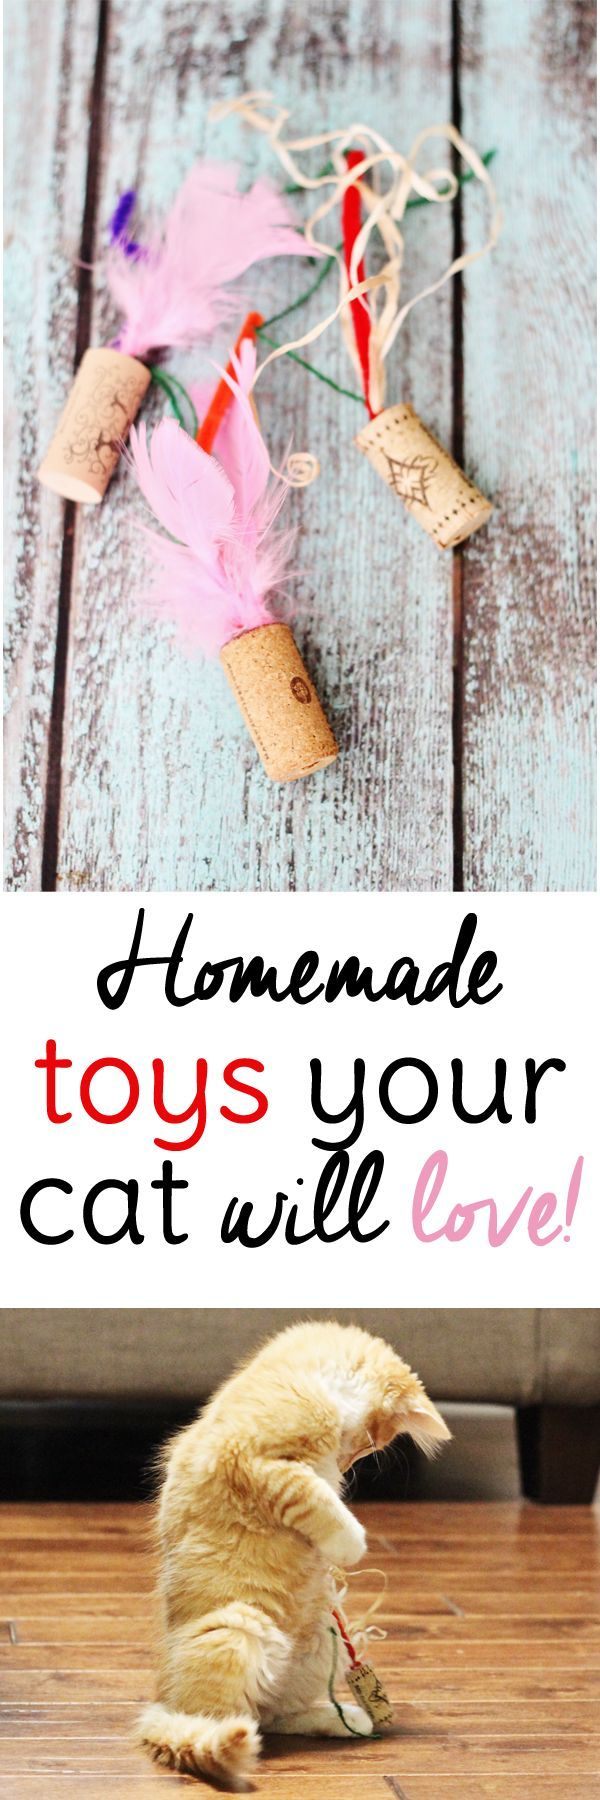 Your cat will love these easy homemade cat toys made from wine corks